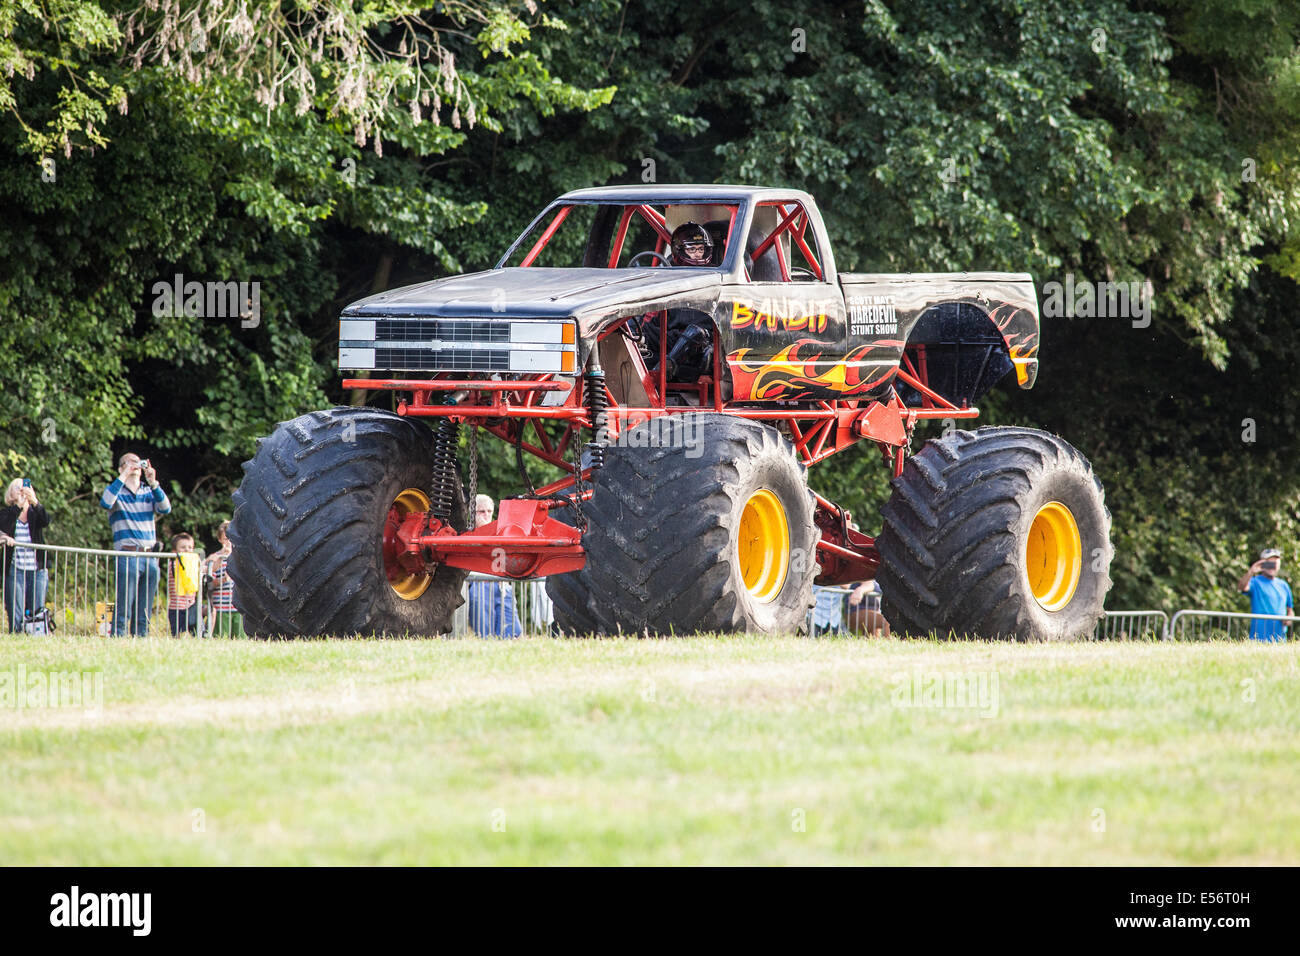 The Bandit monster truck at Scott May's Daredevil Stunt Show, The Matterley Bowl, Winchester, Hampshire, England. - Stock Image